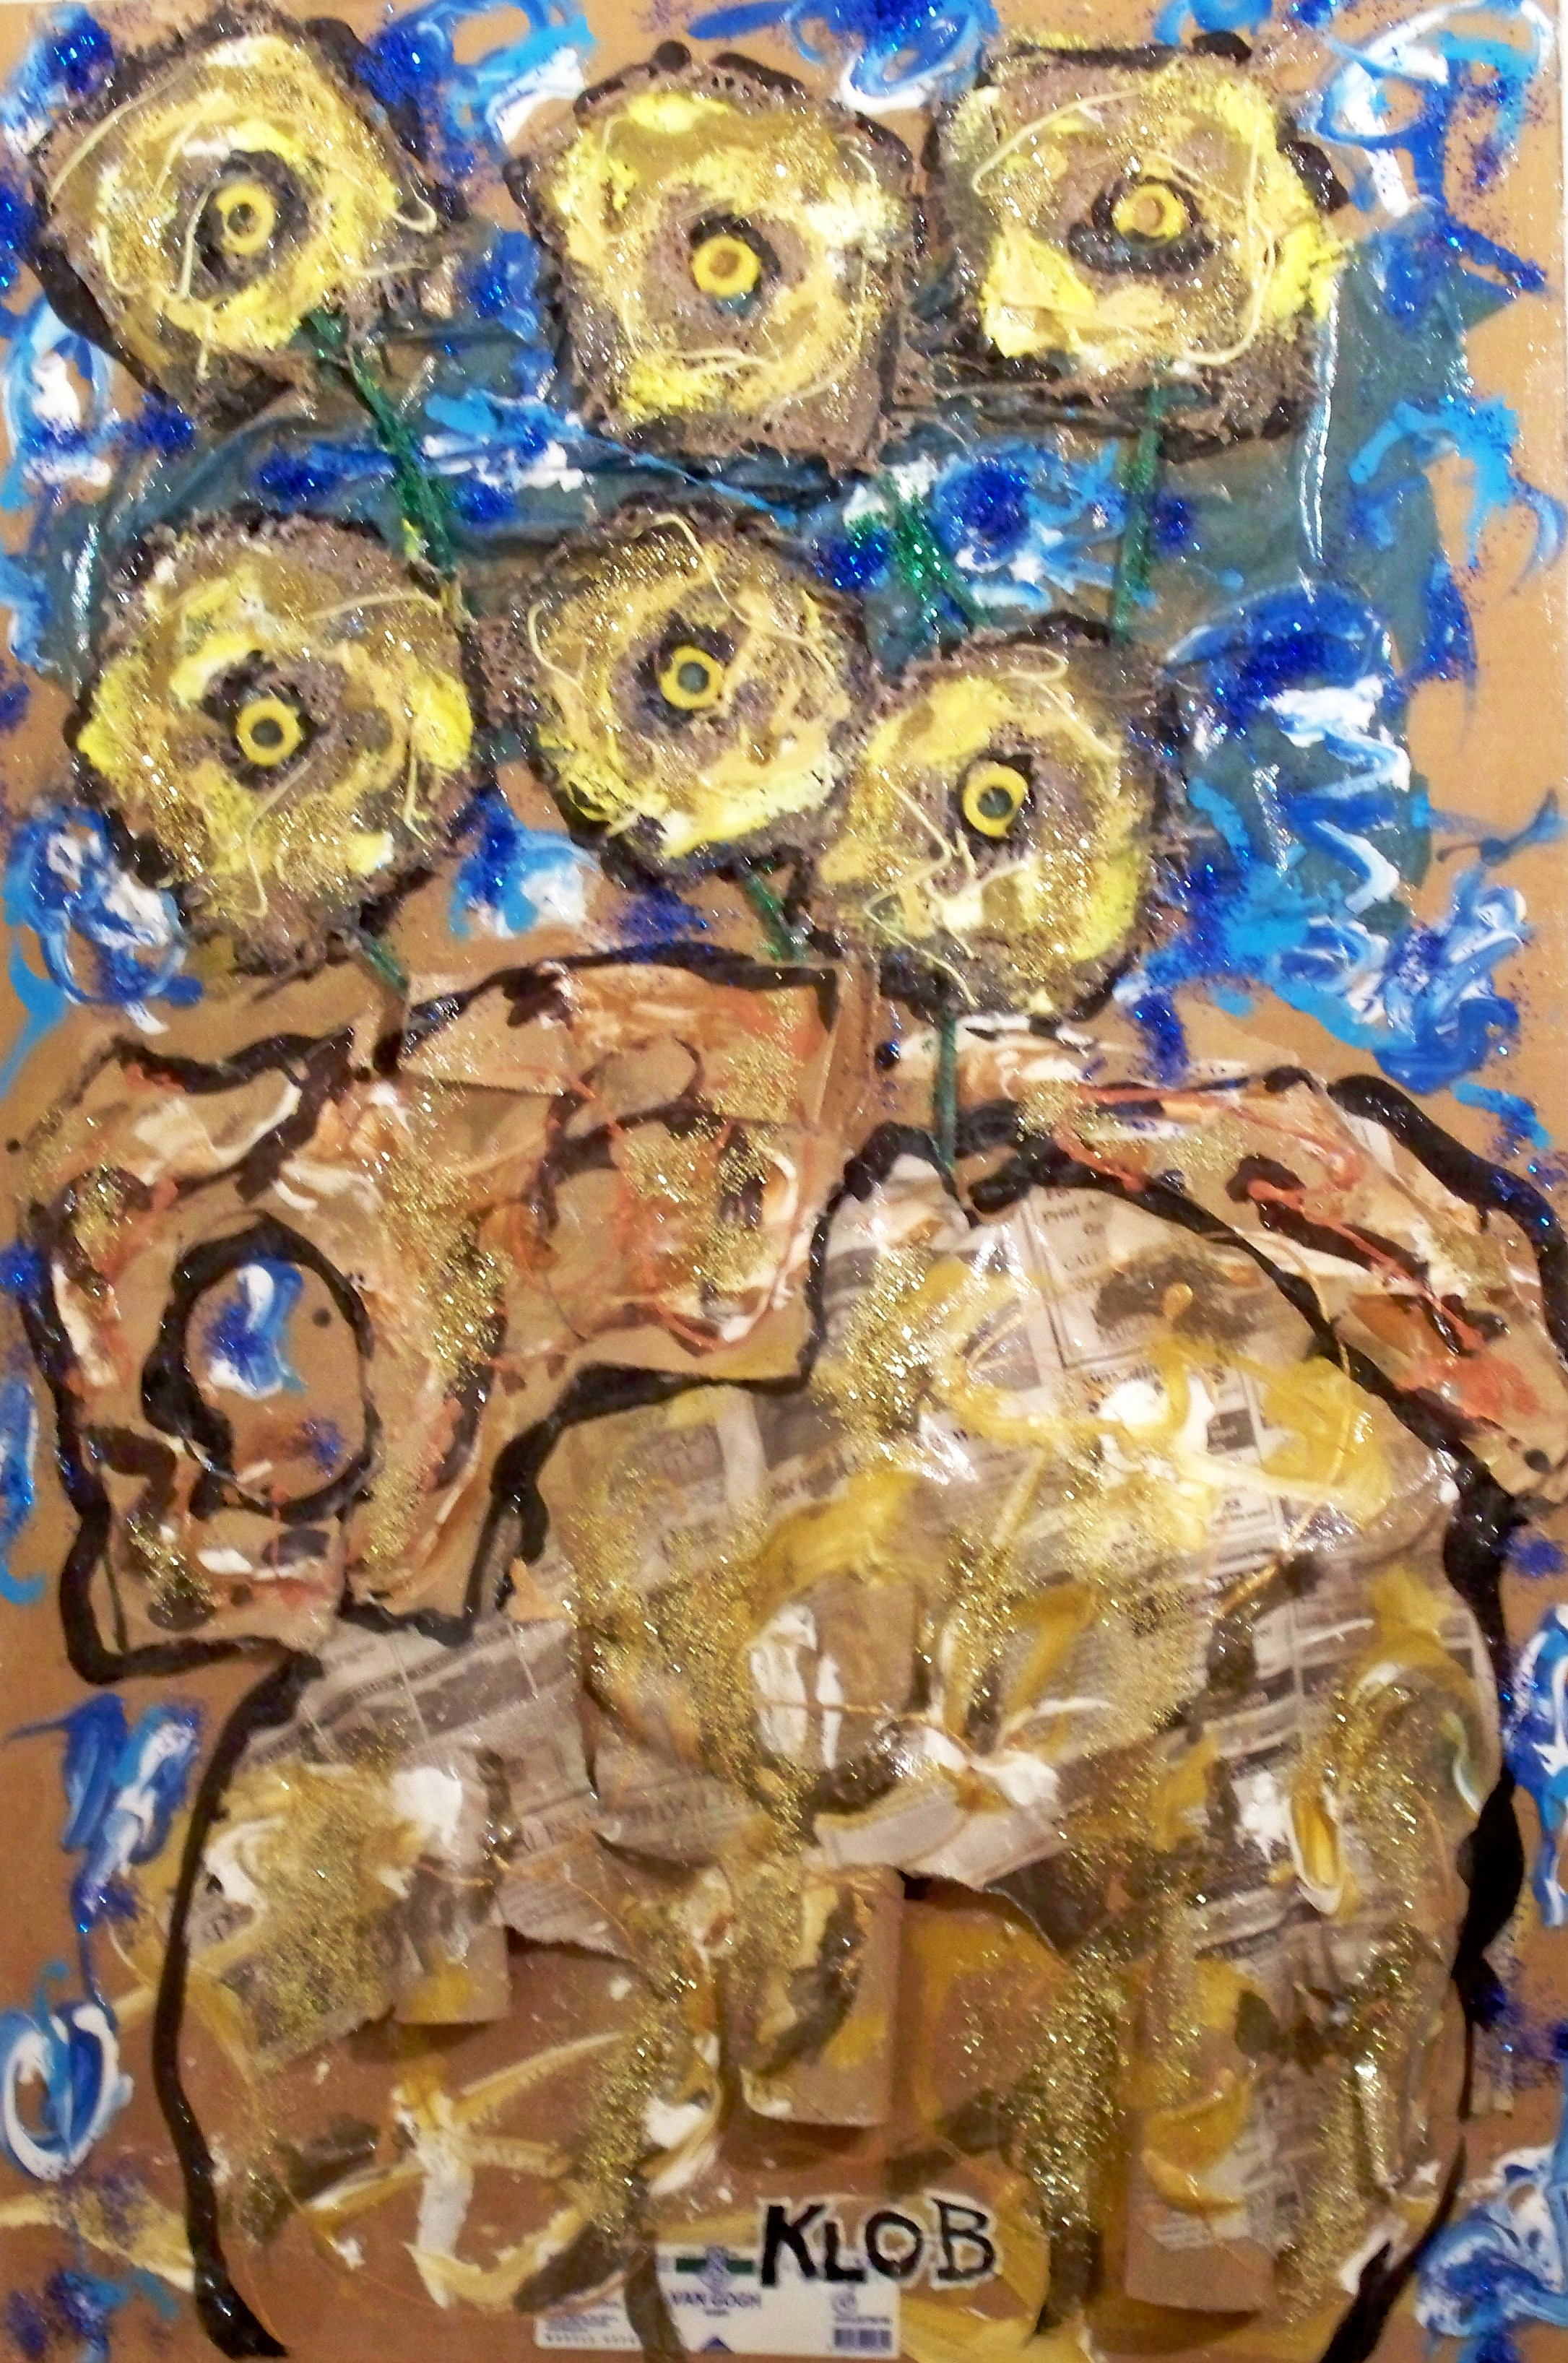 2012; acrylic, burlap, brown paper bag, newpaper, cellophane, glitter; 24 in X 36 in